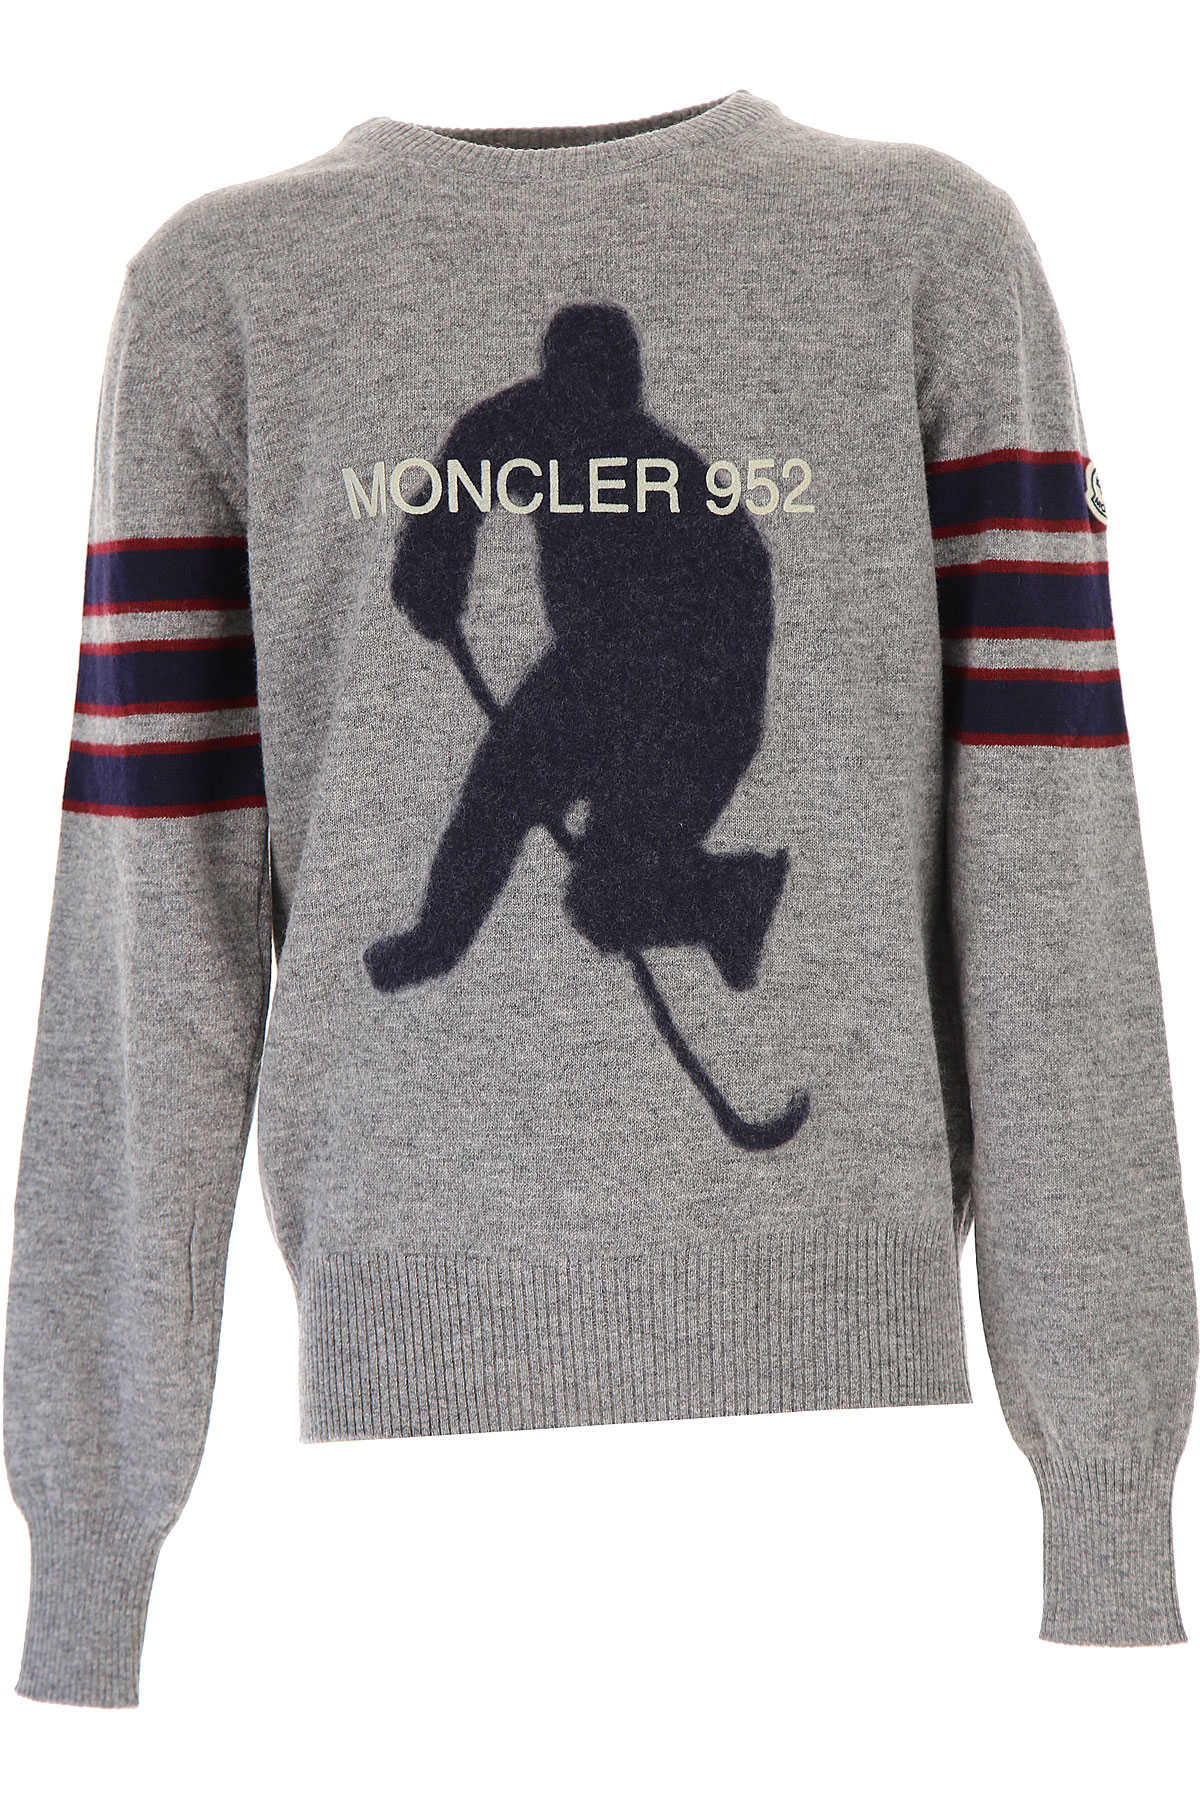 Moncler Kids Sweaters for Boys On Sale in Outlet Grey SE - GOOFASH